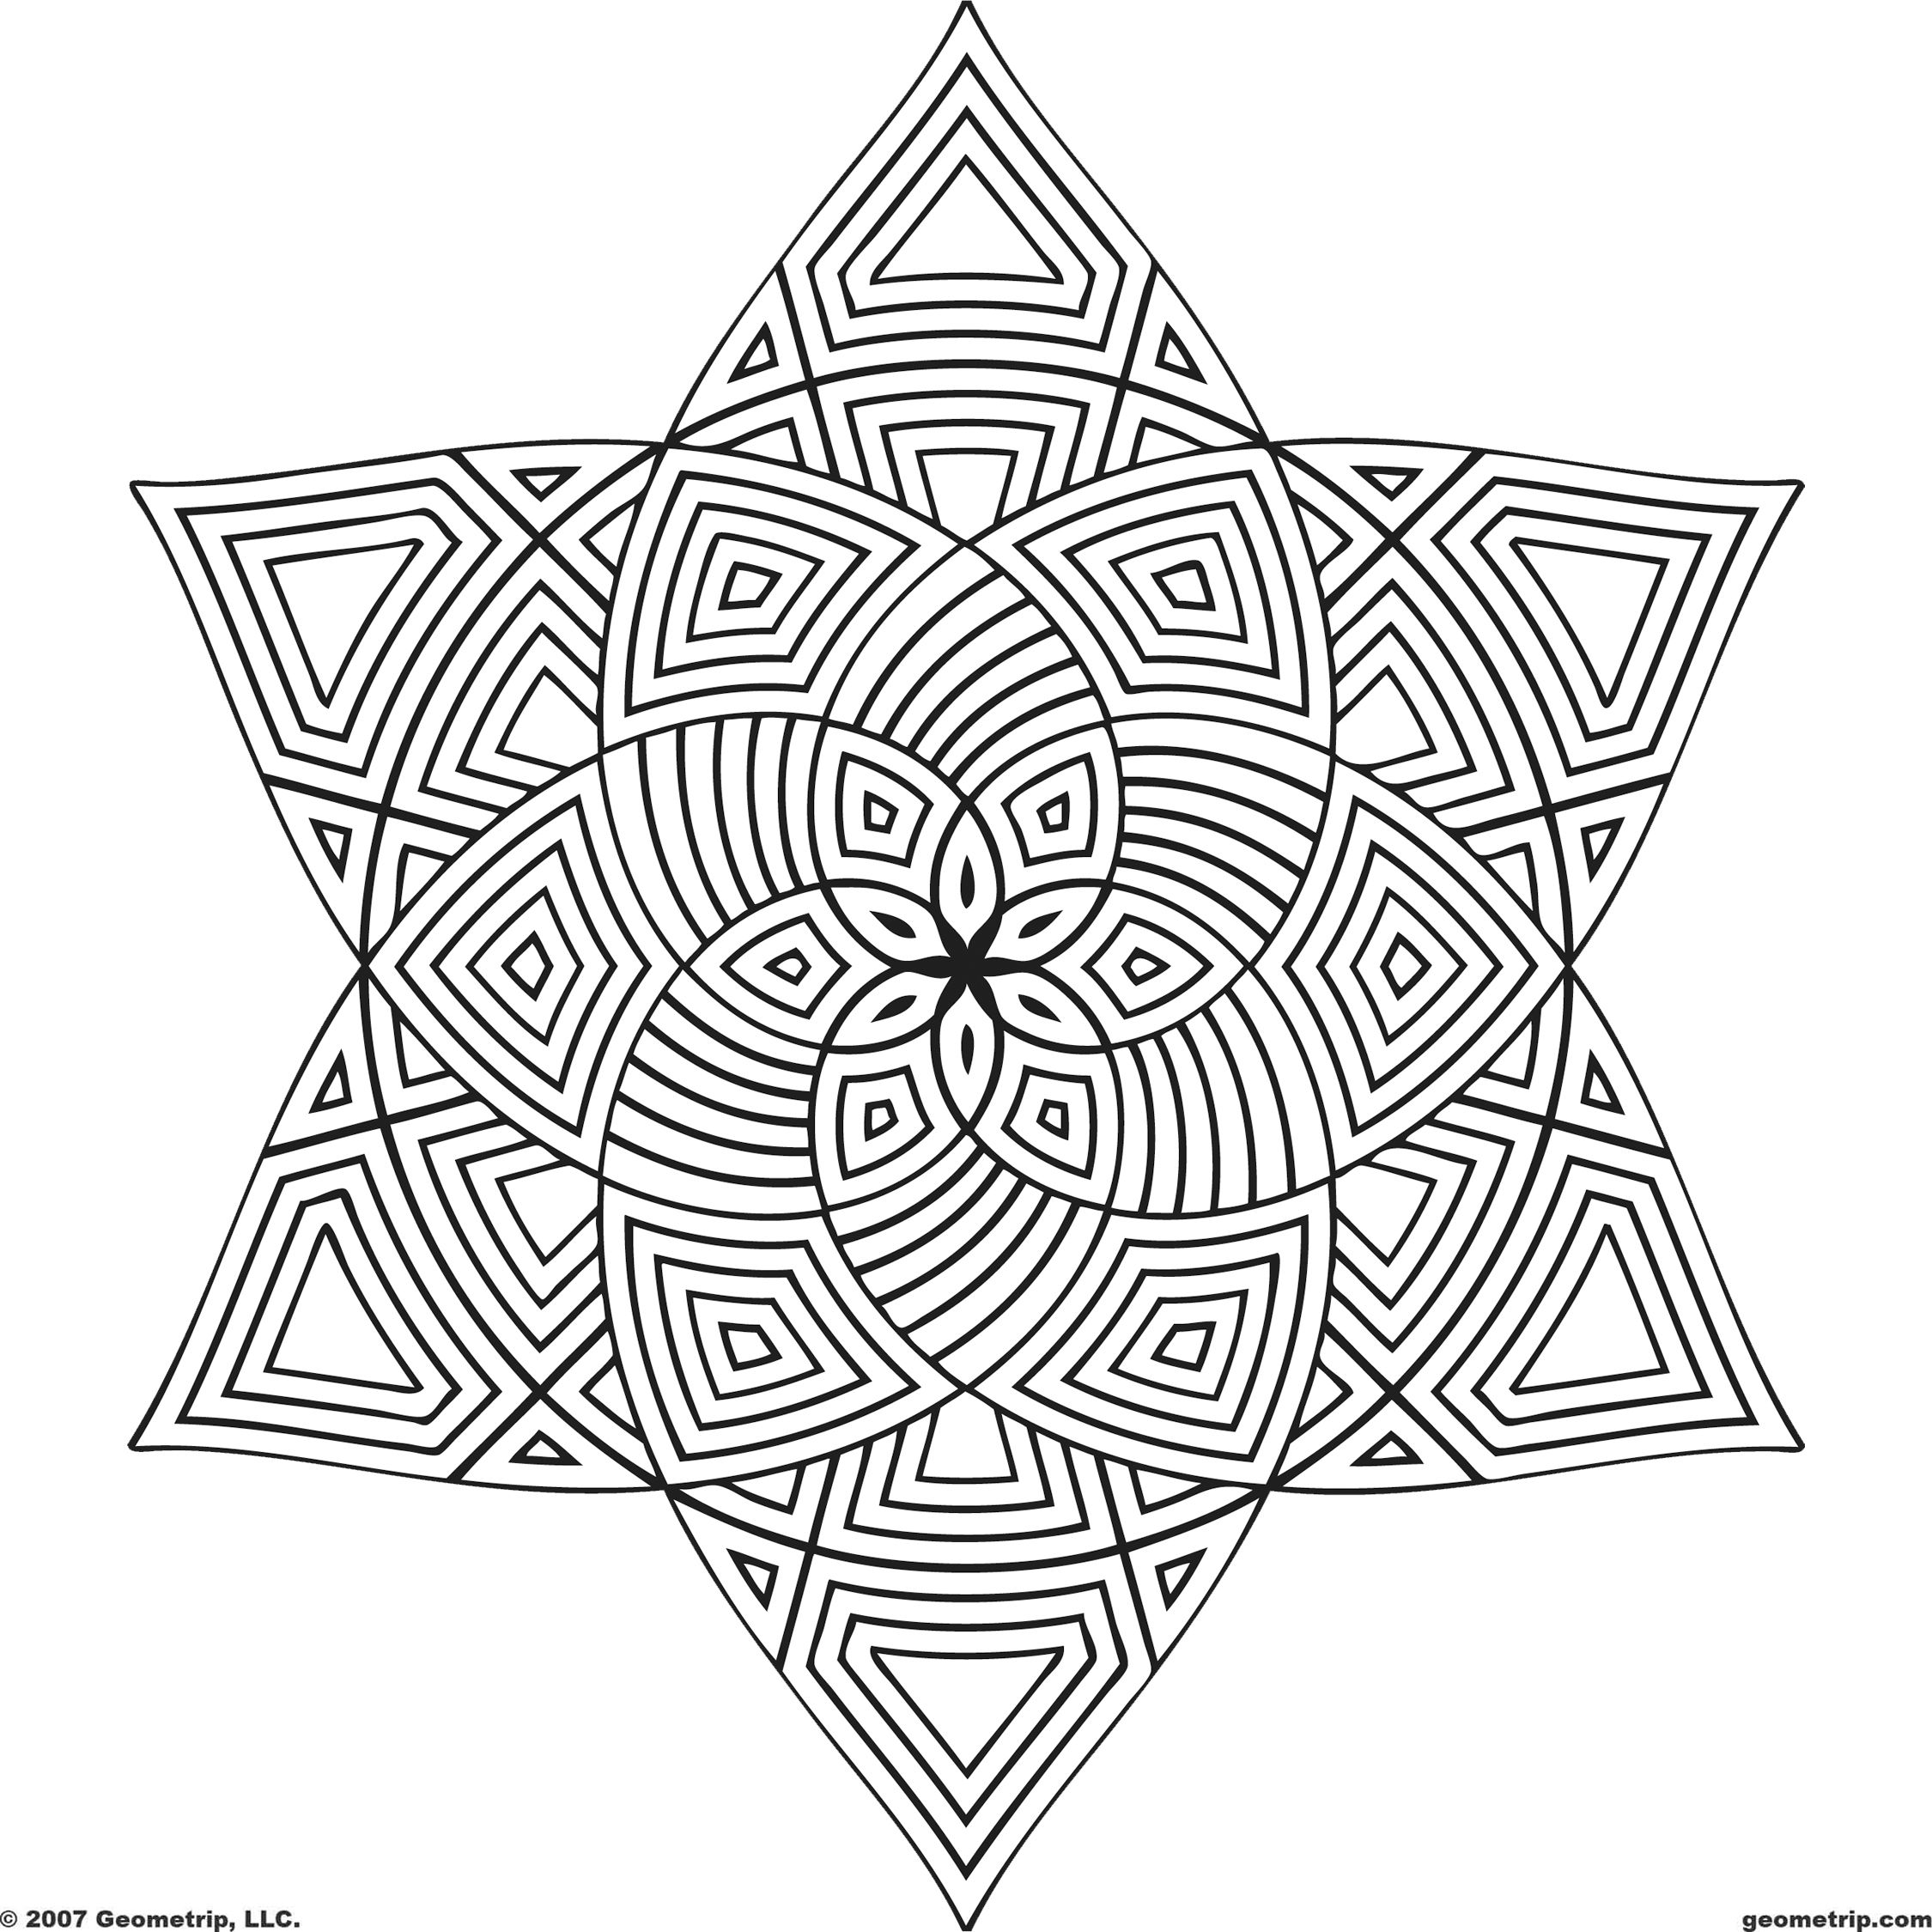 Hard mandala coloring pages for adults - Free Printable Mandala Coloring Pages Shapes Page 1 Of 2